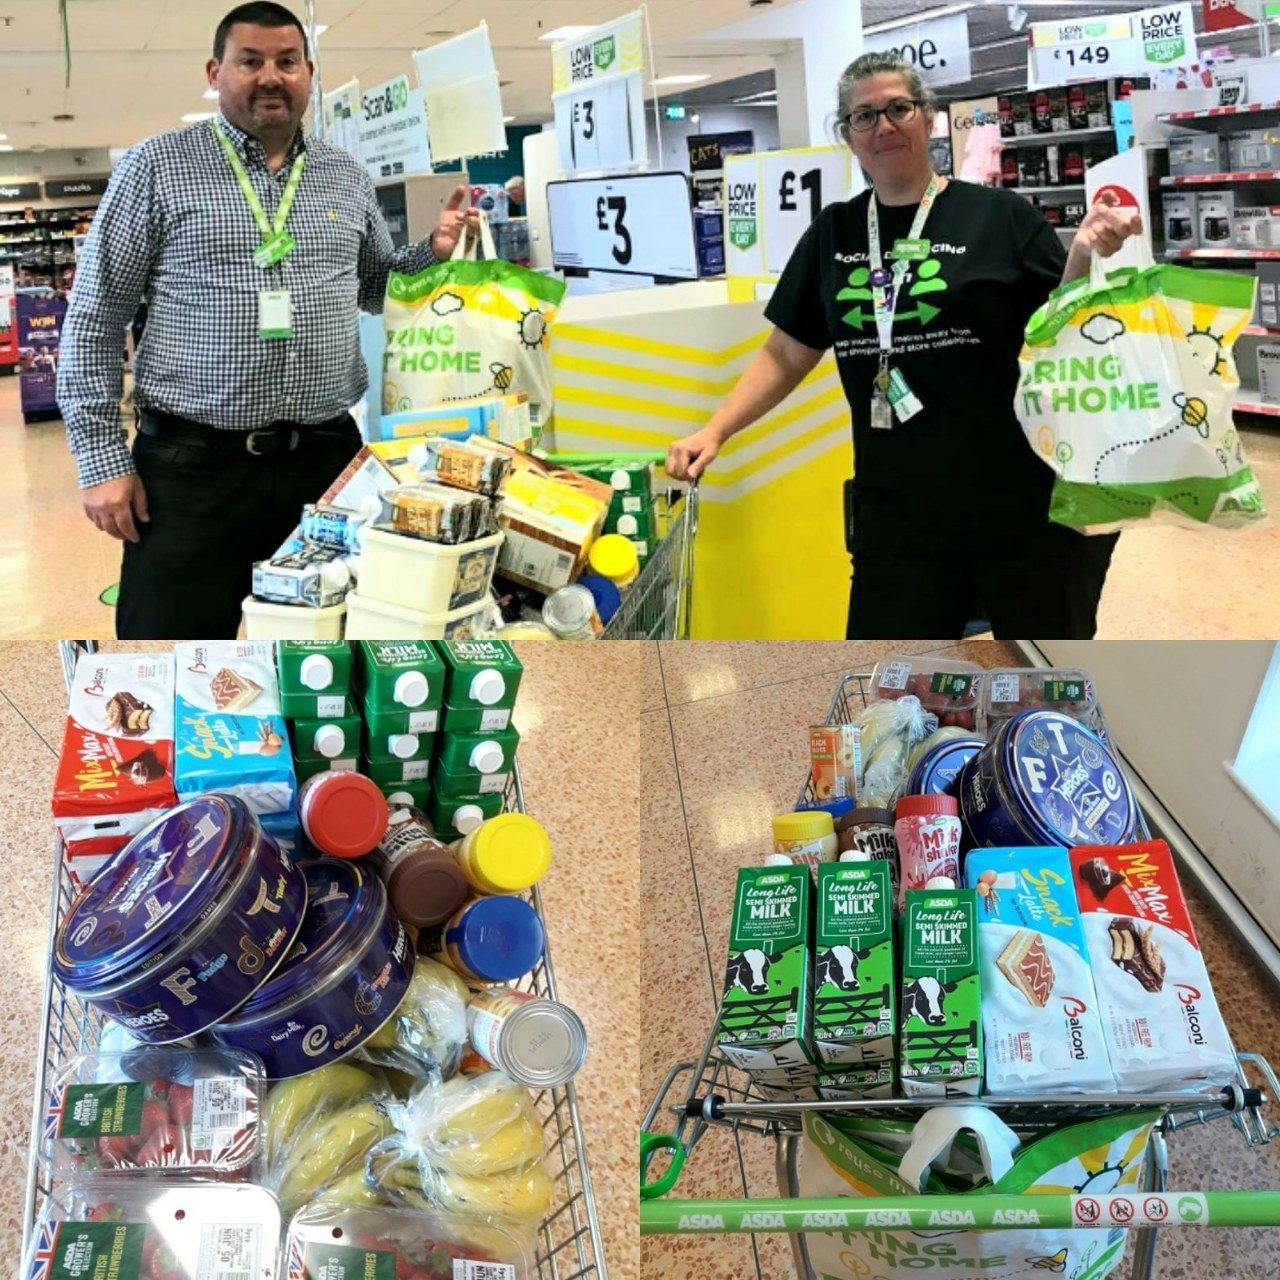 Turning Point donation  | Asda Leamington Spa